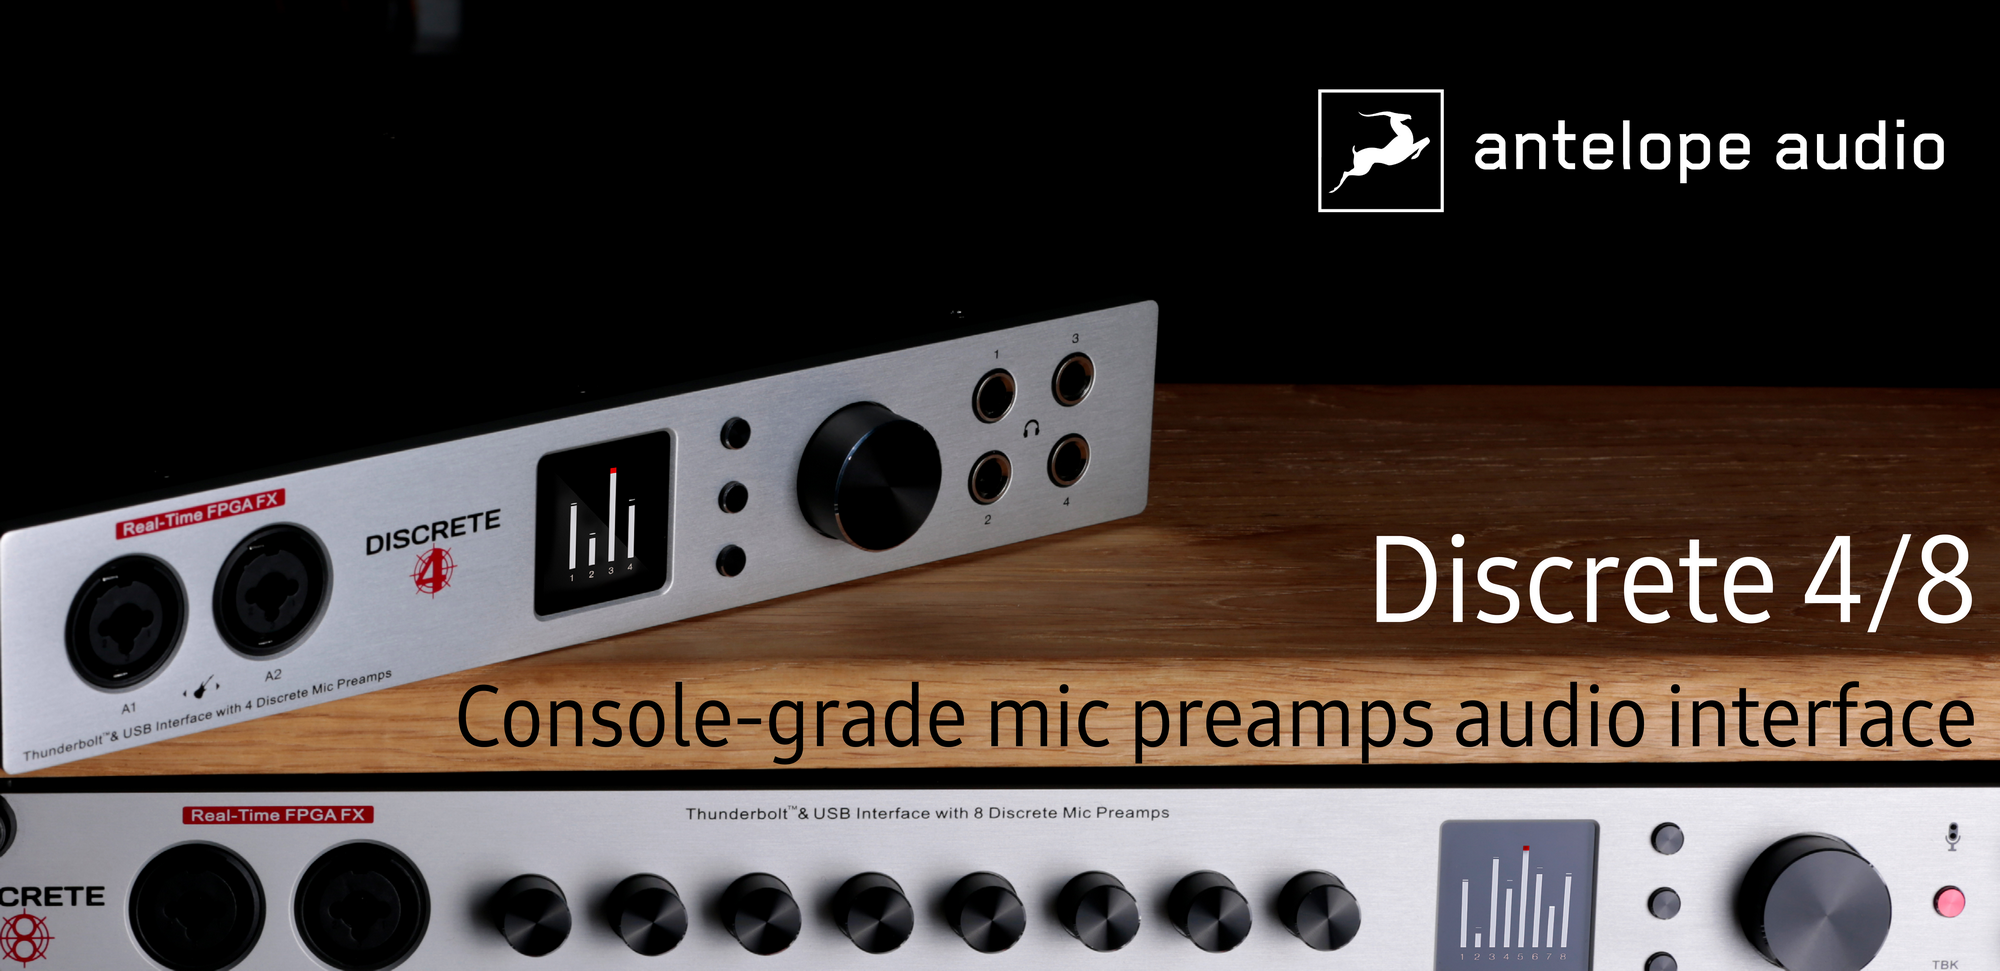 Antelope Audio Discrete Interfaces